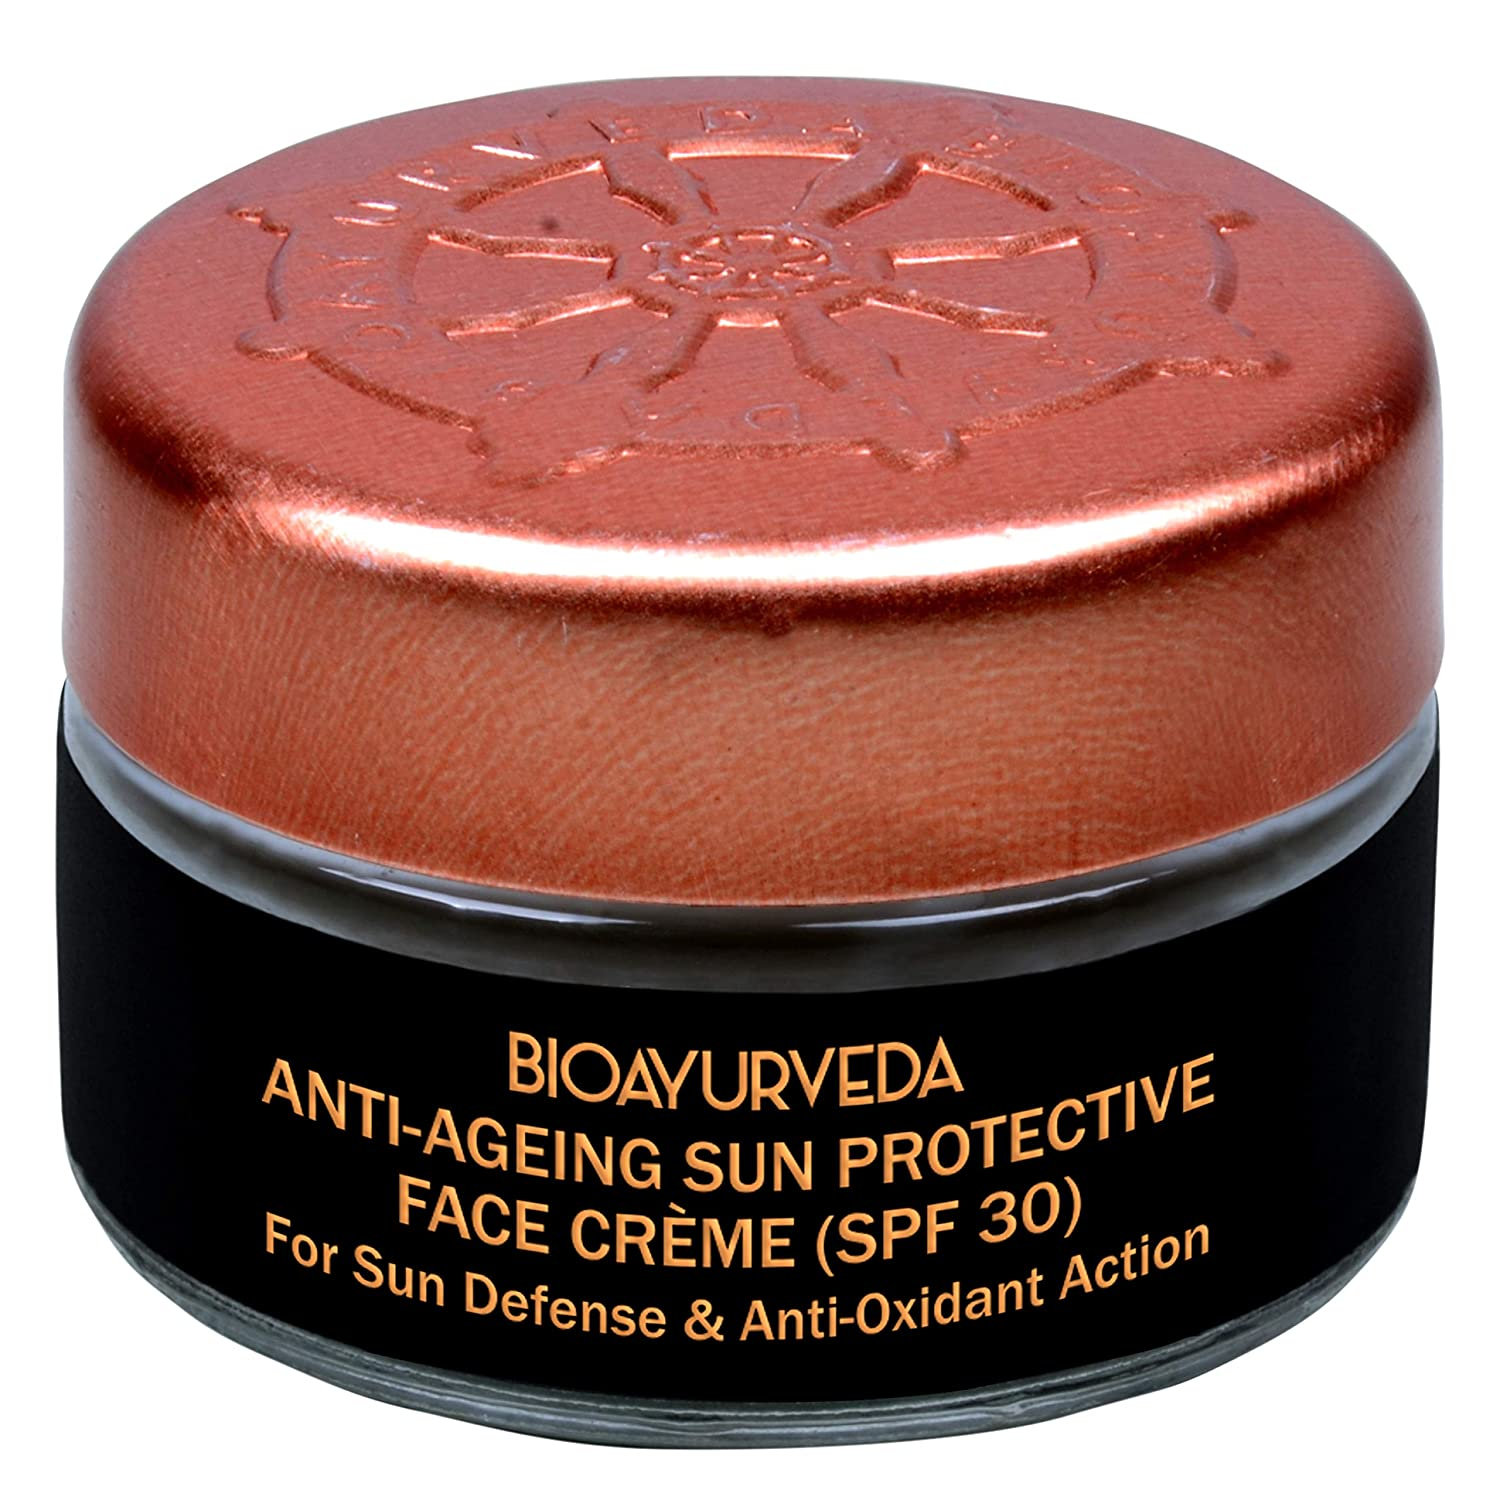 BIOAYURVEDA Sun Protective Face Cream with SPF 30 and Broad Spectrum(UVA/UVB) Protection,Skincare With Organic Ingredients, Facial Sunscreen for Sensitive Skin,Fine Lines,Wrinkles,Dark Spot (0.7 Oz)